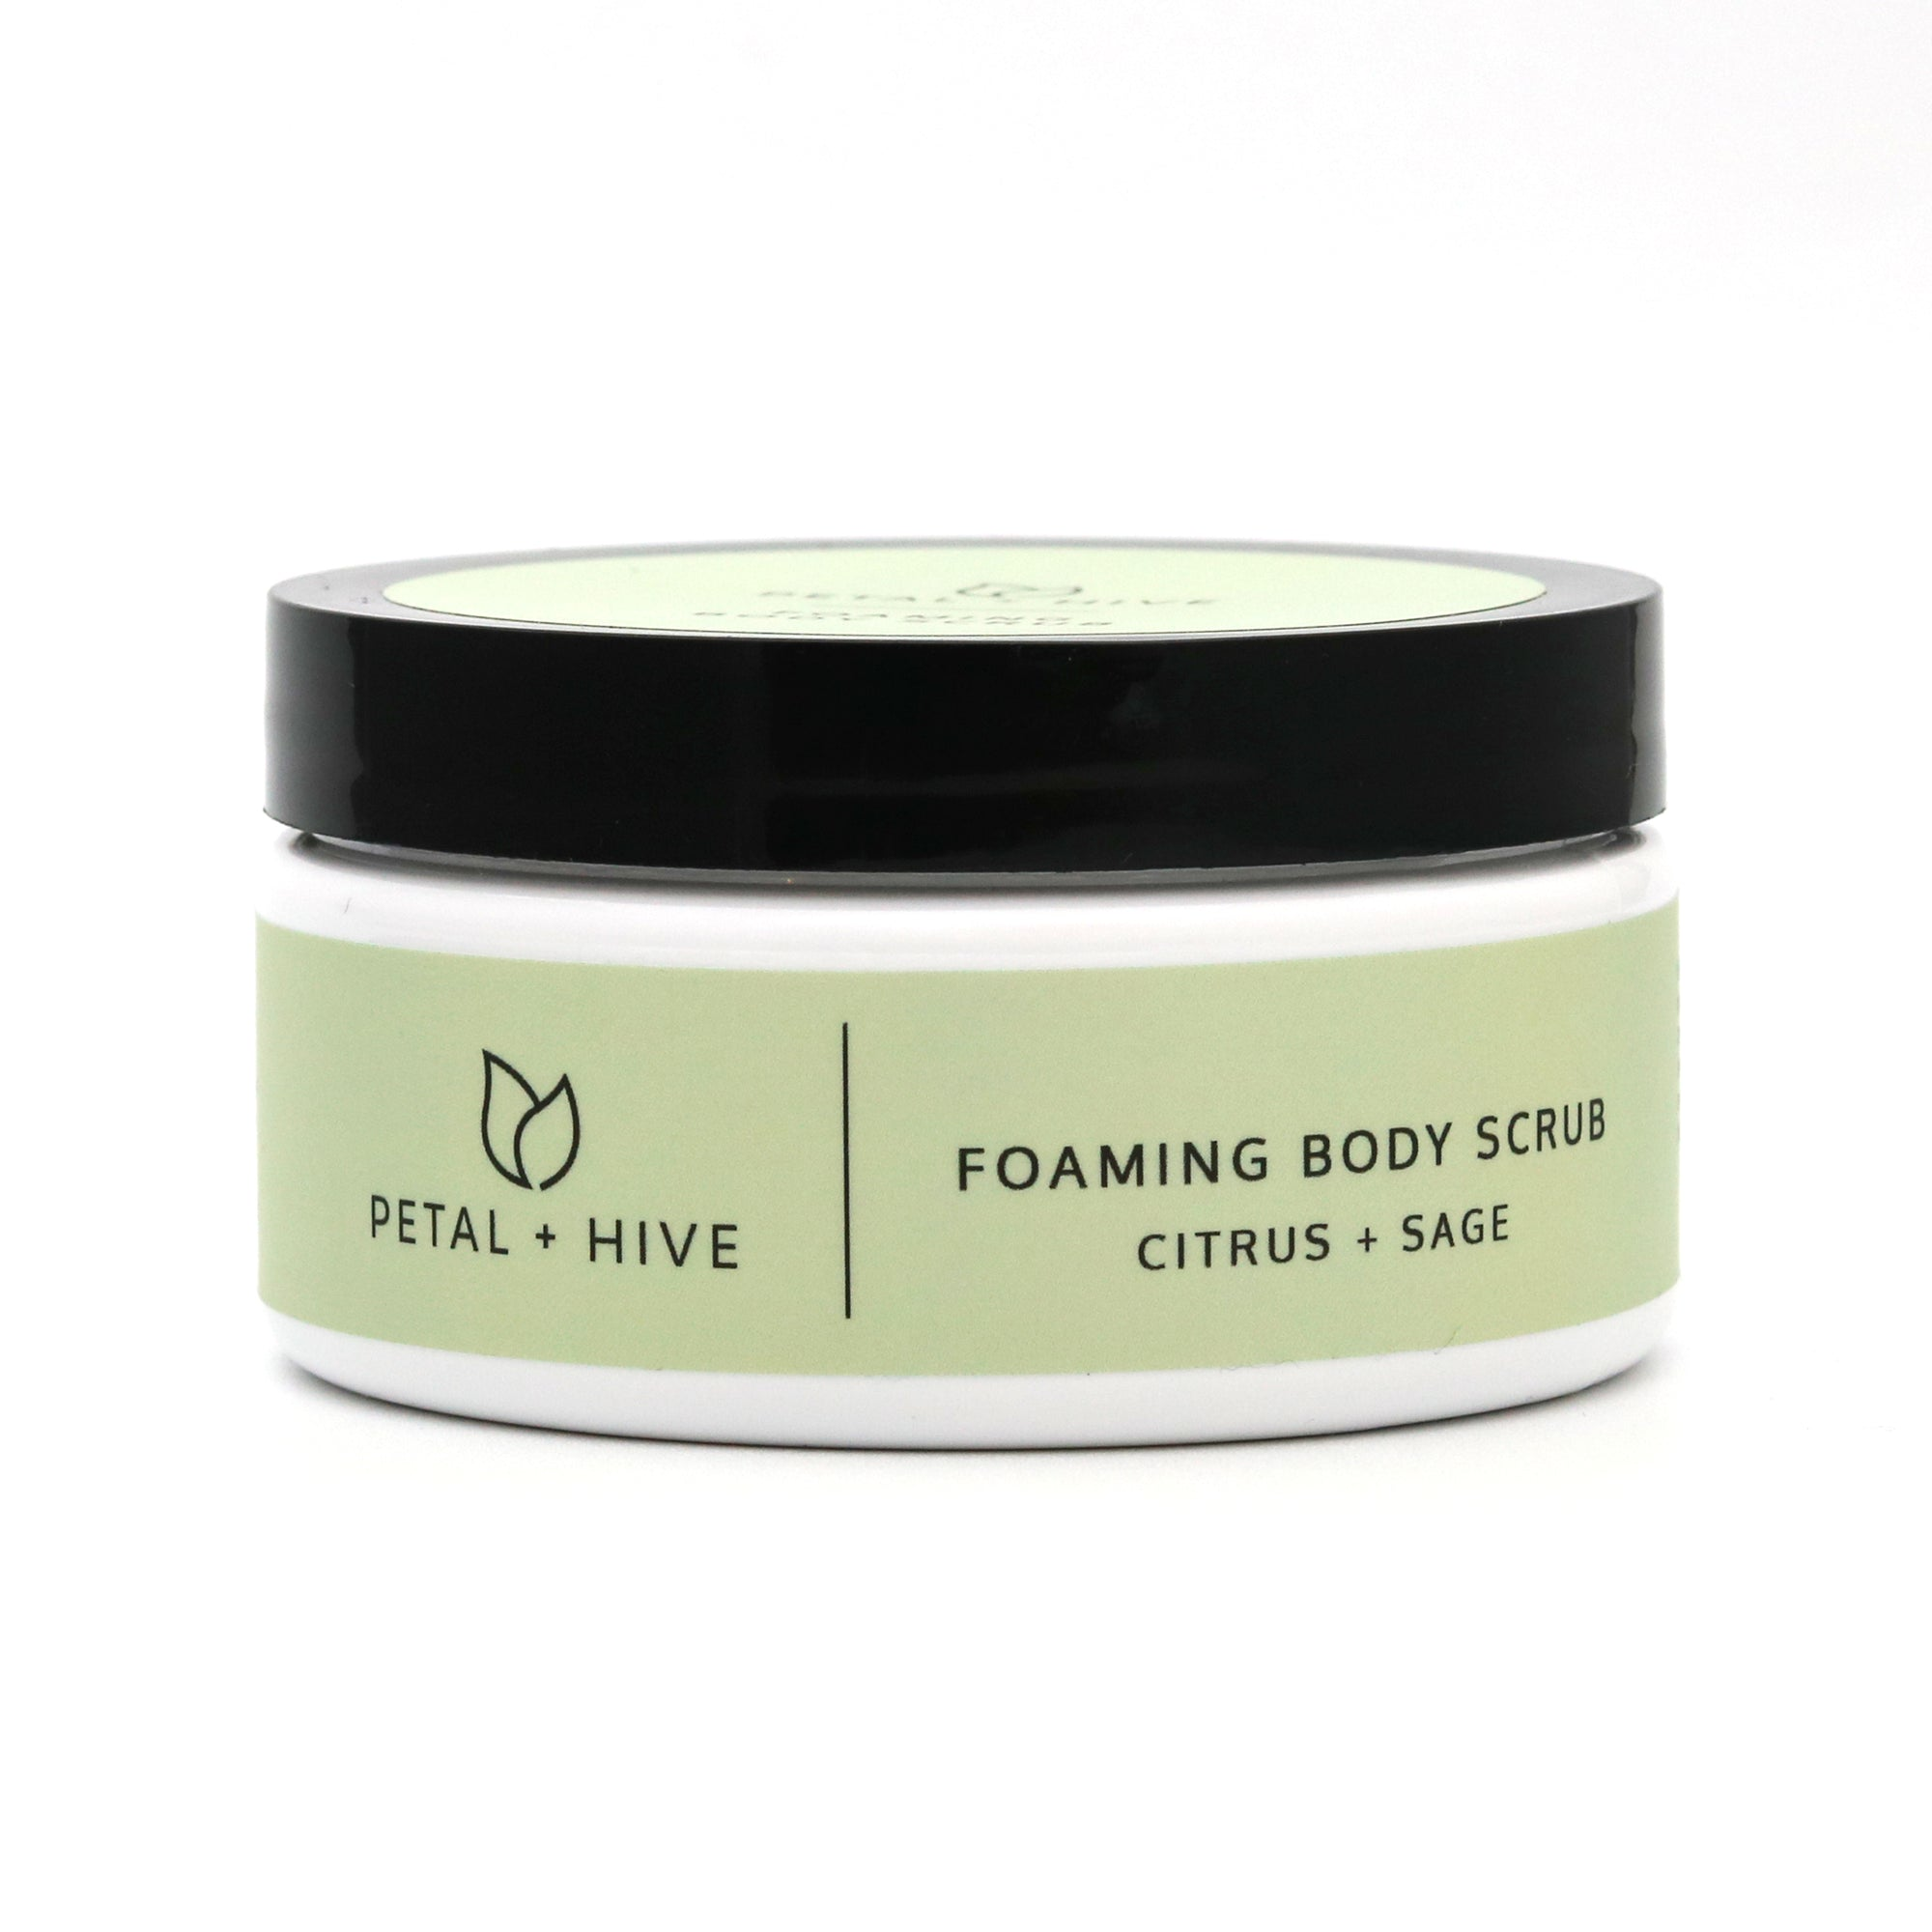 Citrus + Sage Foaming Body Scrub